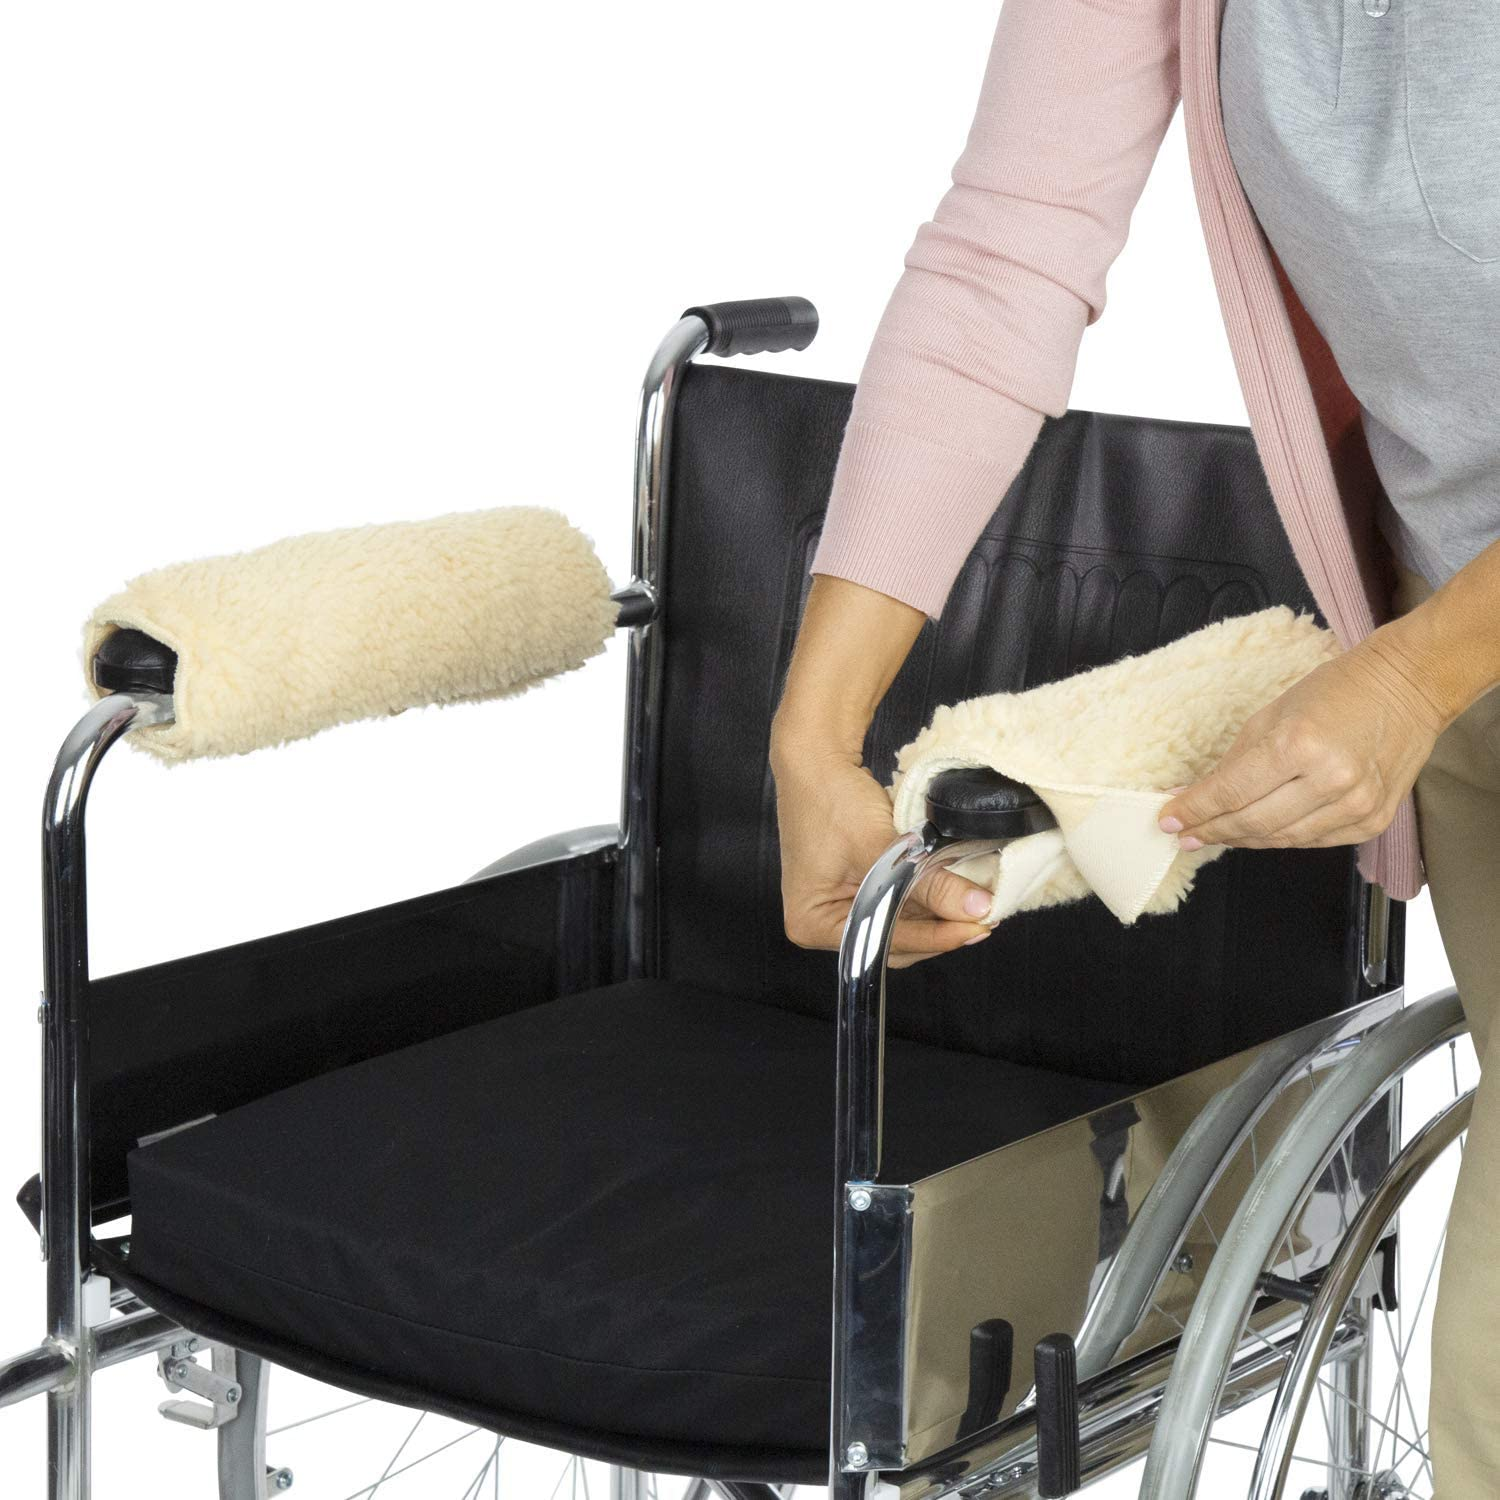 Rziioo Sheepskin Fleece Armrest Covers for Wheelchairs, Transport Chairs & Arm Chairs, Universal Fit, Washable, One Pair